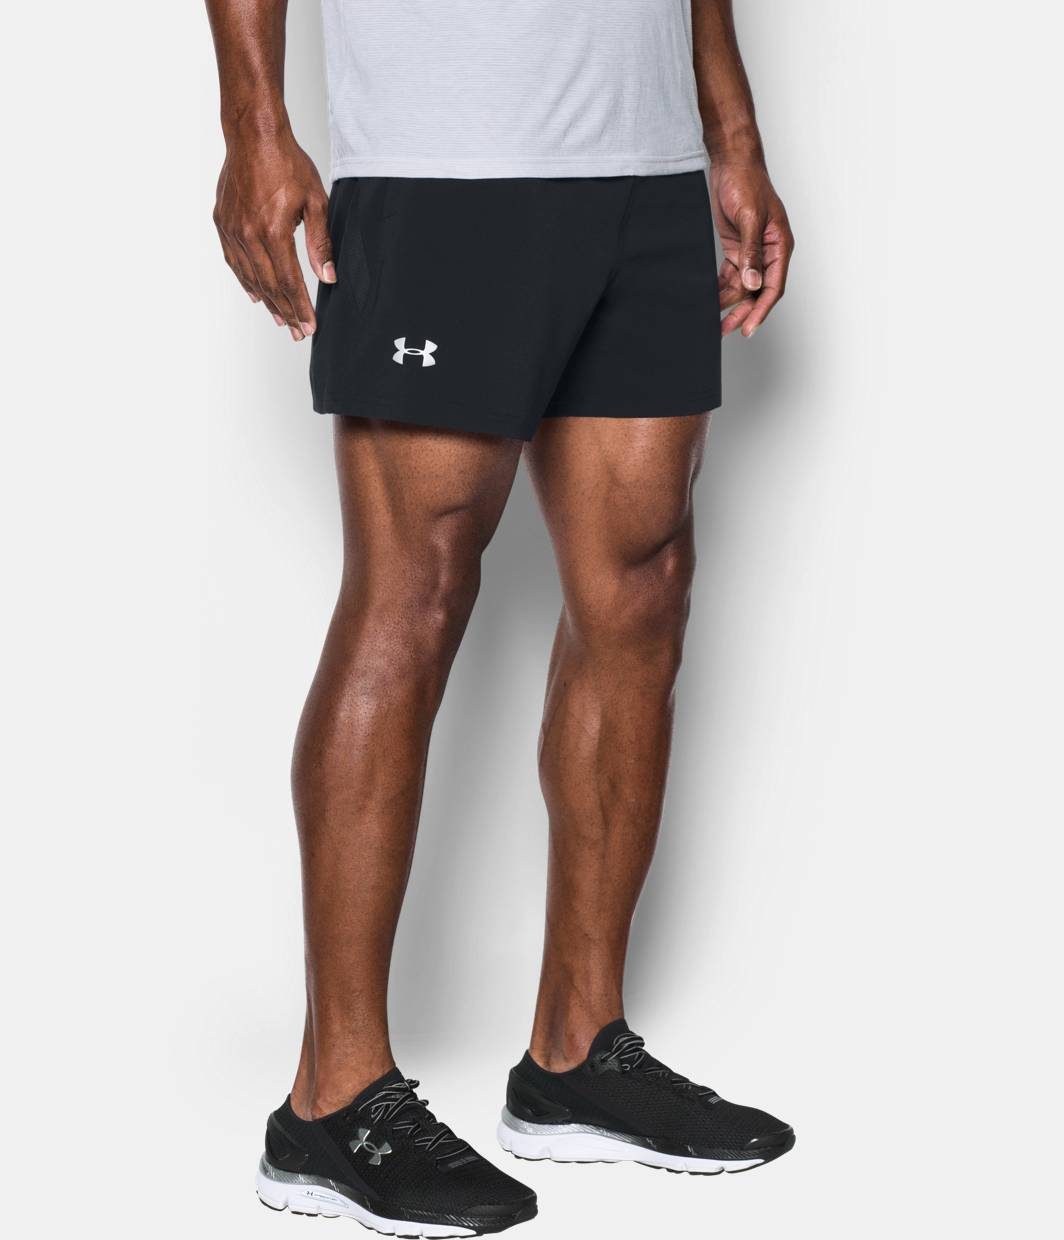 Men's Athletic Shorts | Under Armour CA